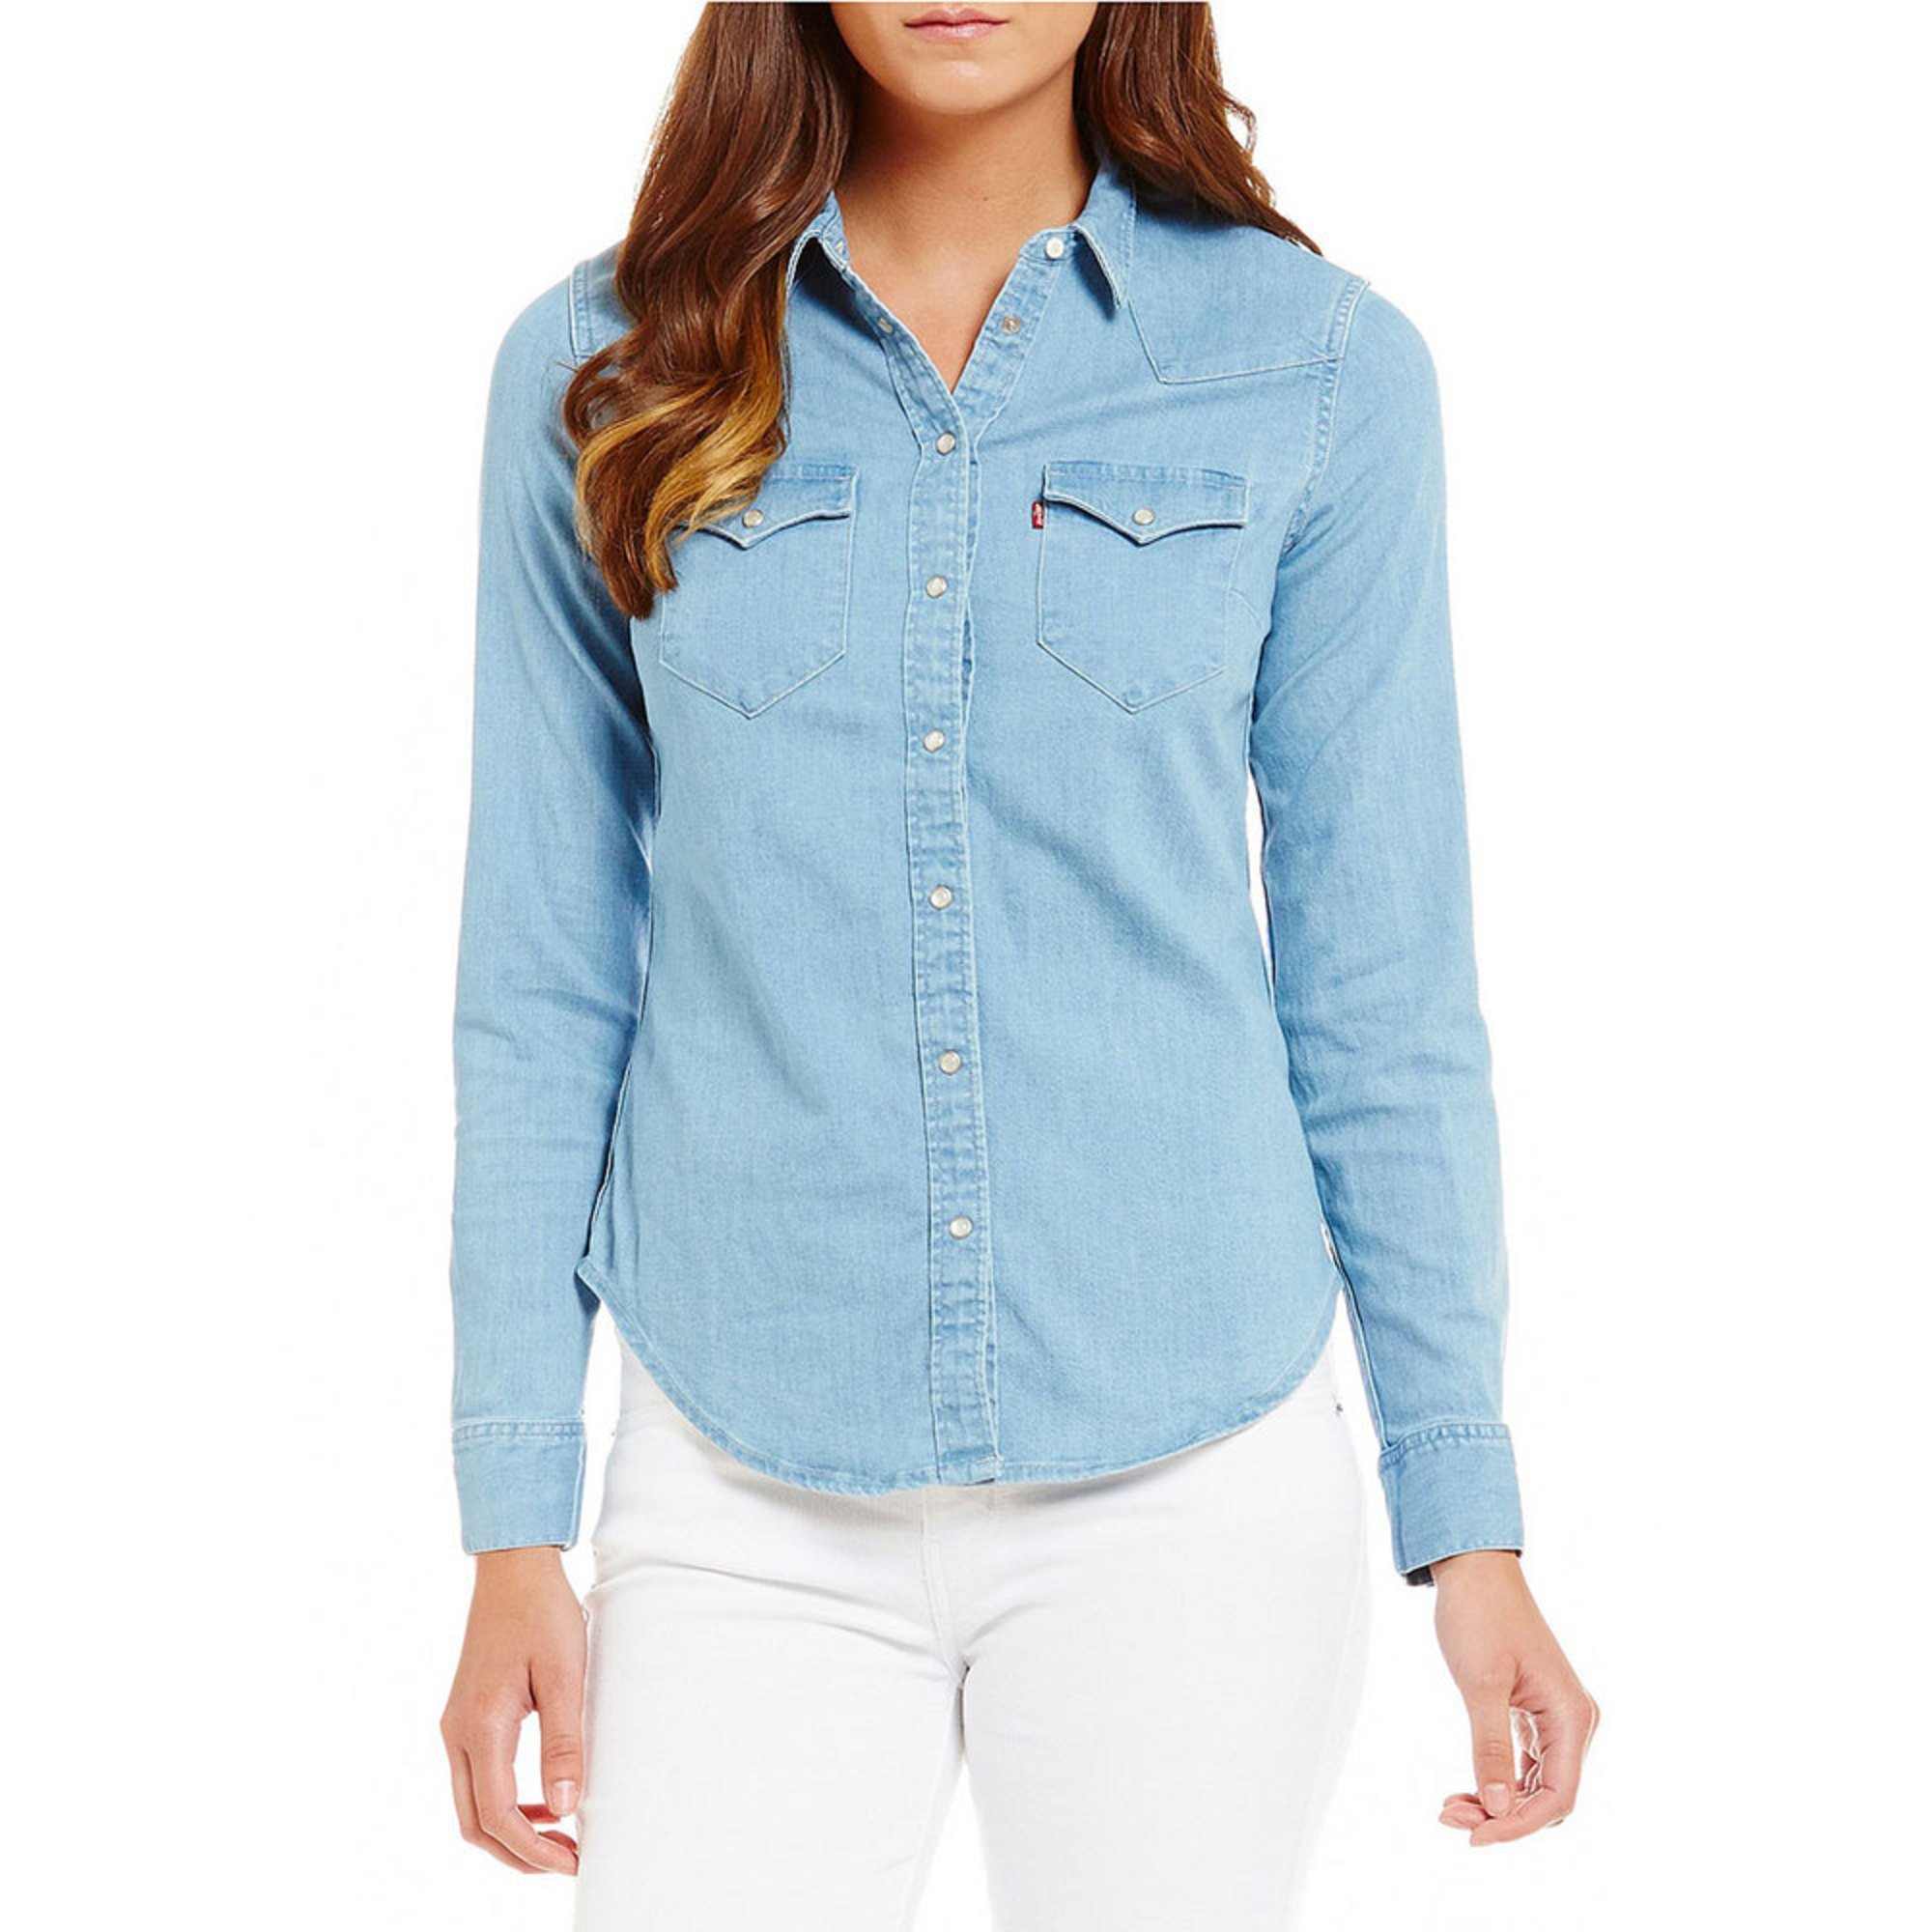 8a22526185 Levi s. Levi s Women s Tailored Classic Western Woven Button Down Shirt